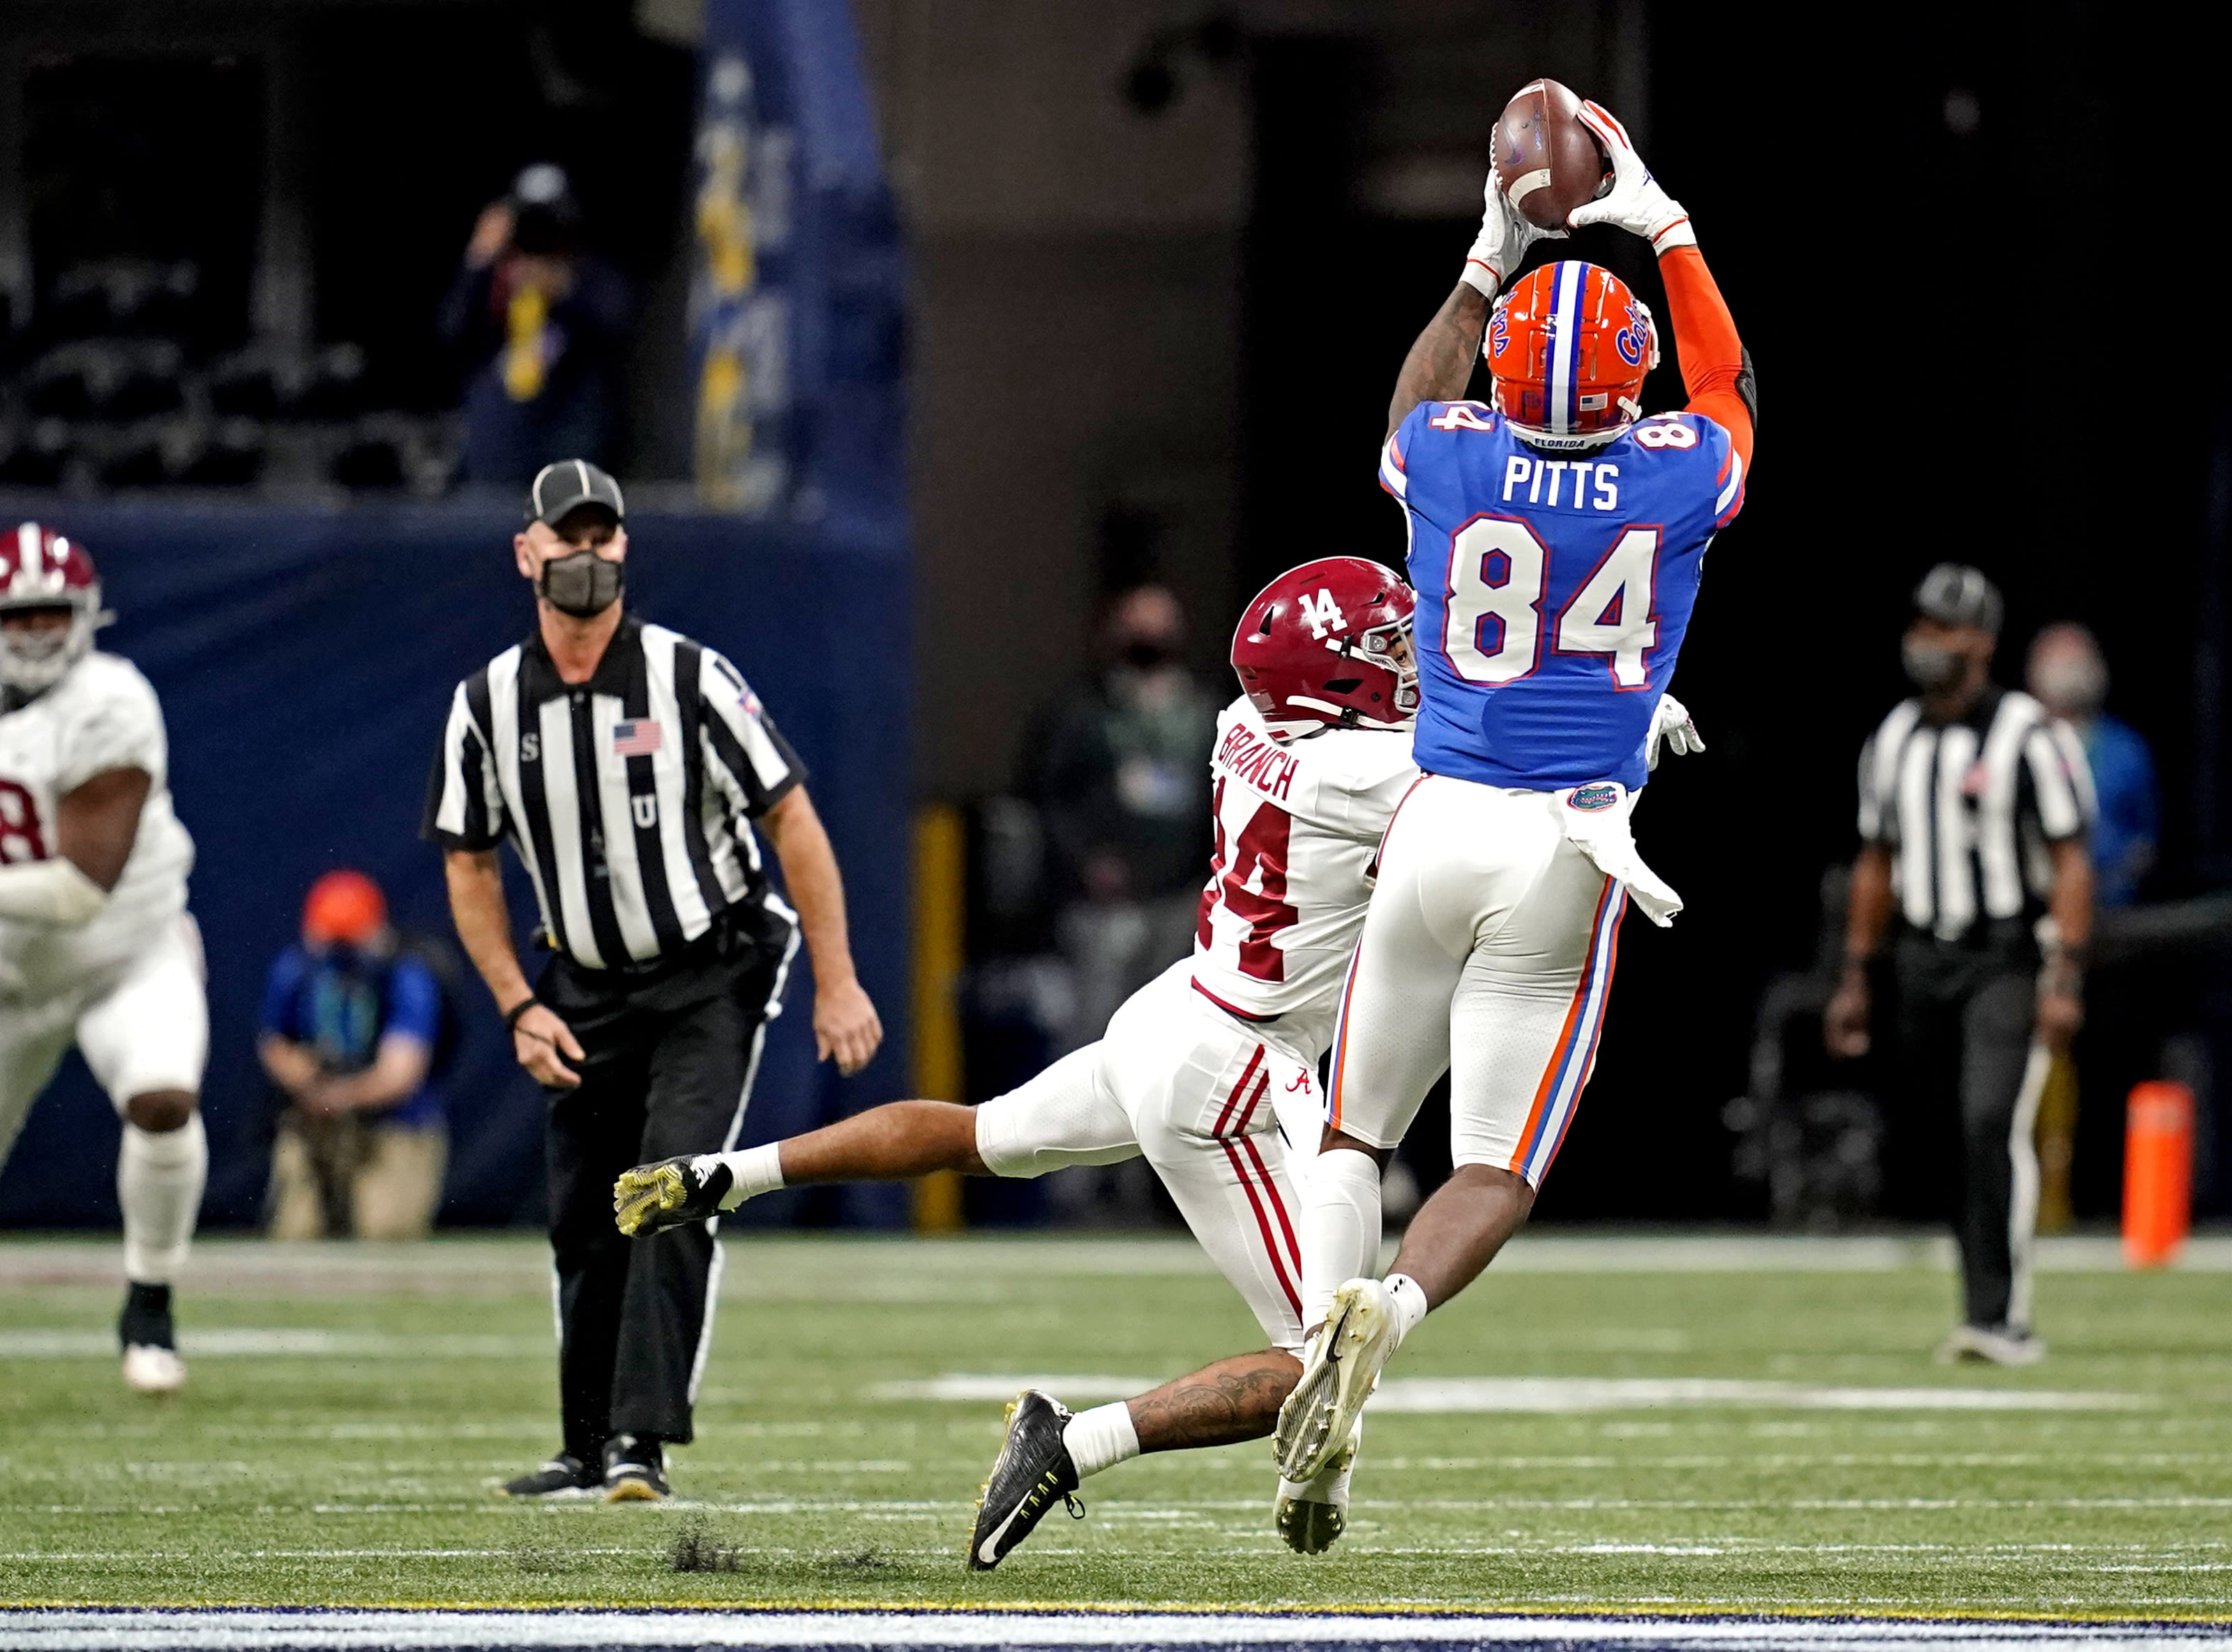 Florida tight end Kyle Pitts